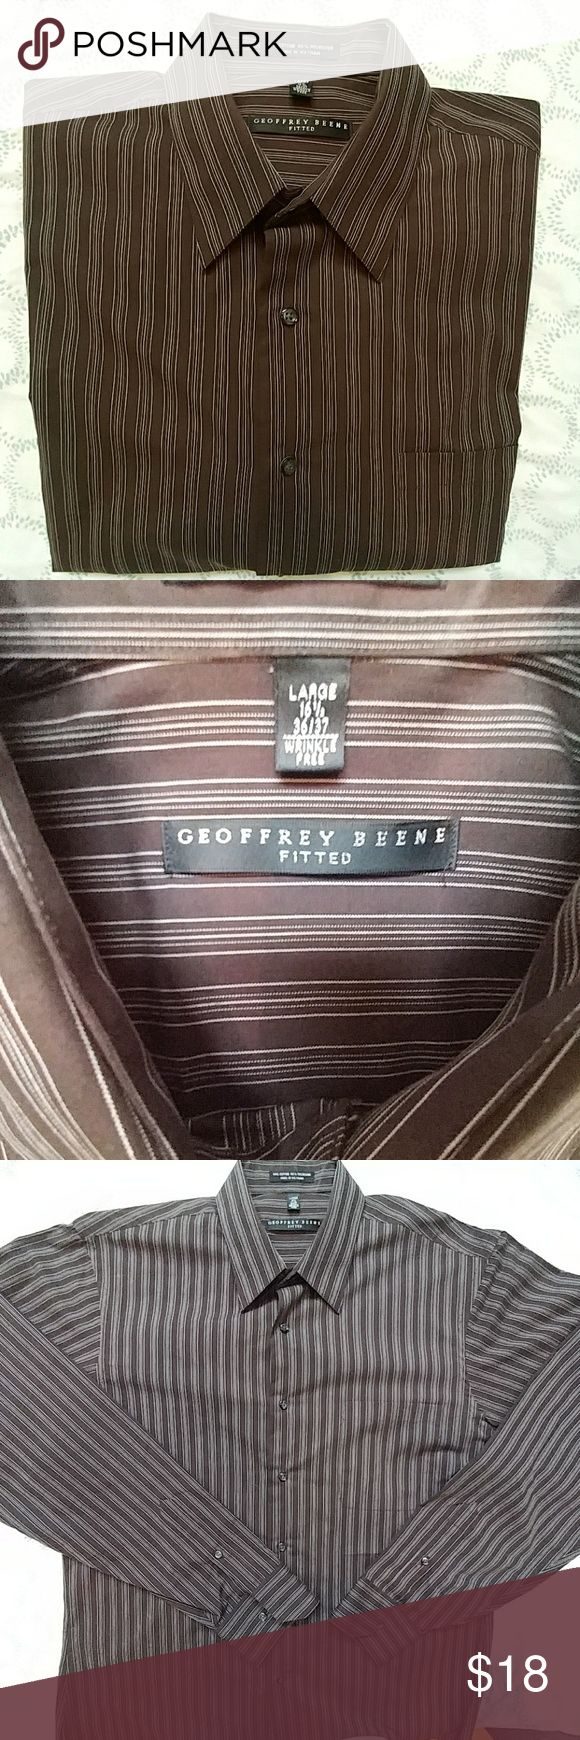 🔥🔛Geoffrey Beene brown long sleeve dress shirt🔥 Fitted long sleeve shirt with cream lines. Sleeve length is 36/37. 60% cotton & 40% polyester. Worn once, in excellent condition. Geoffrey Beene Shirts Dress Shirts